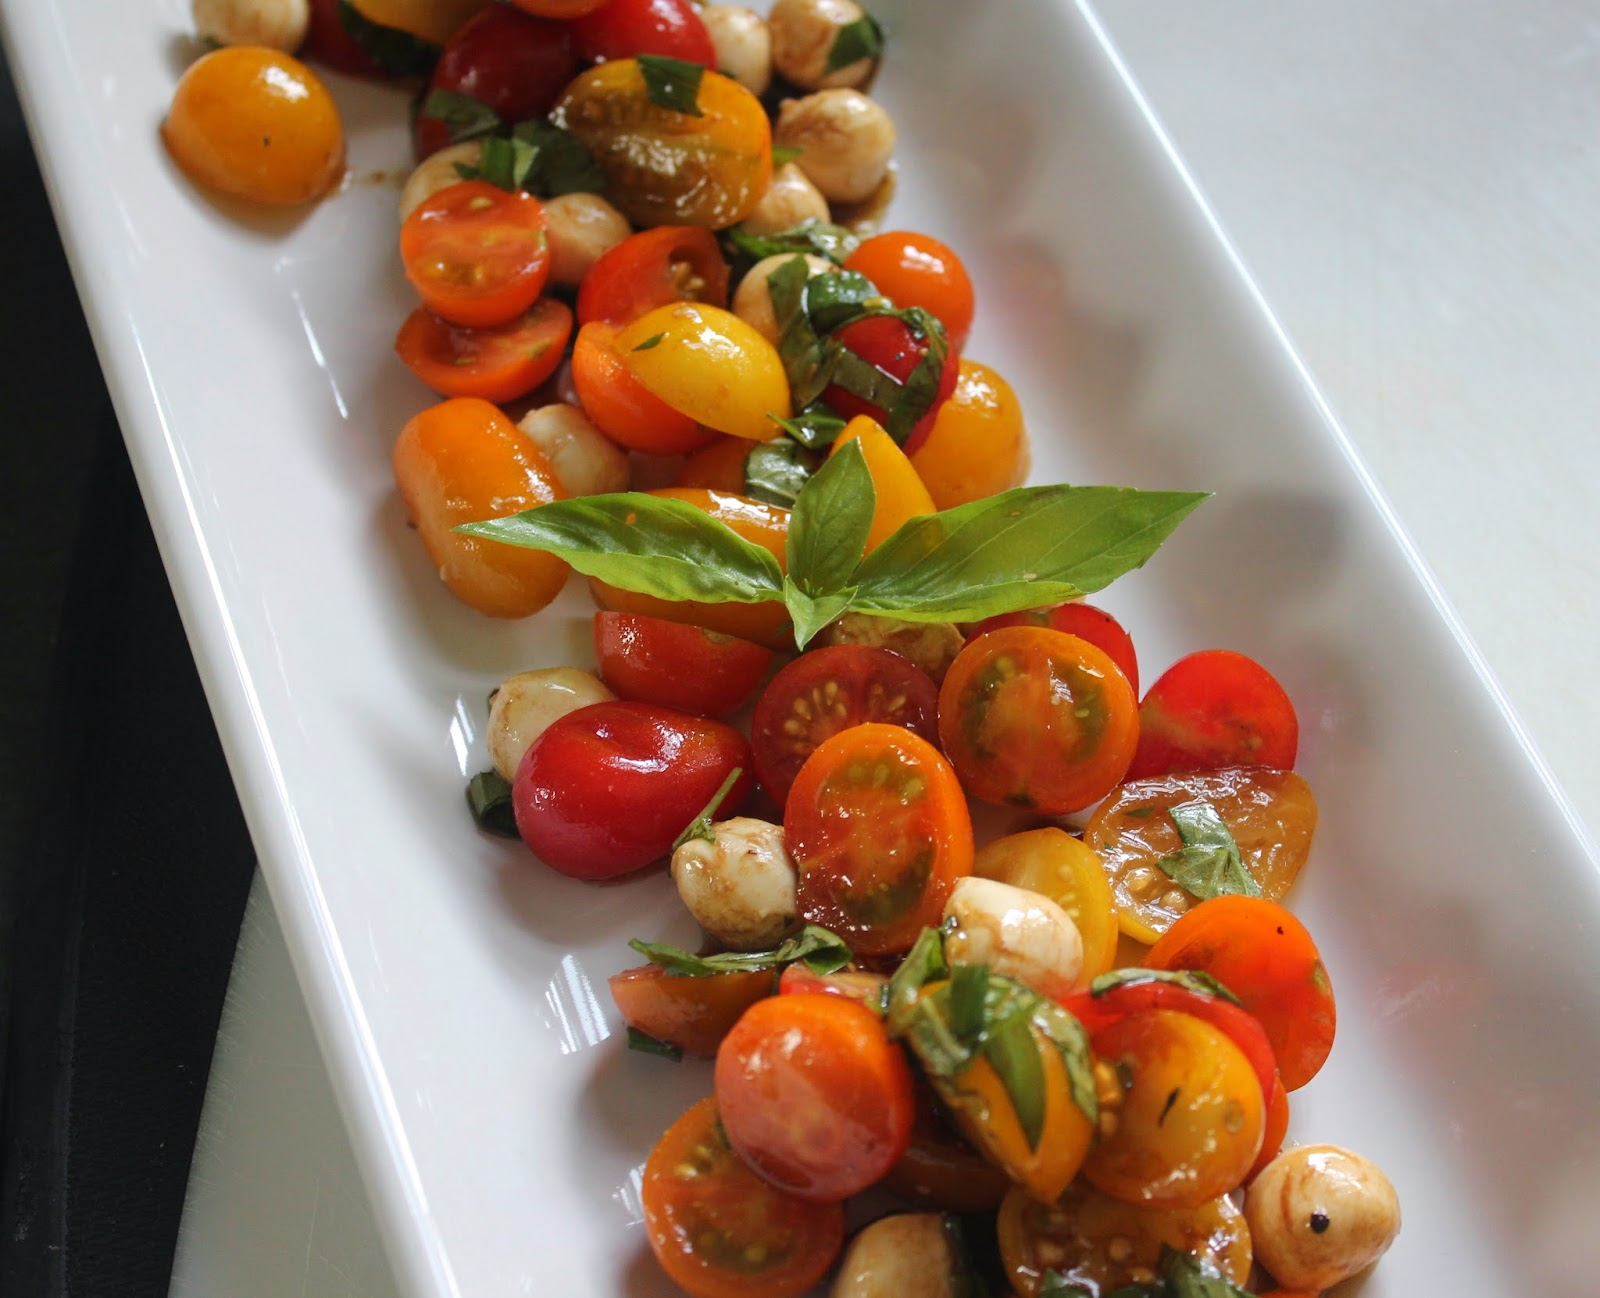 Caprese salad with tomatoes and basil from the garden